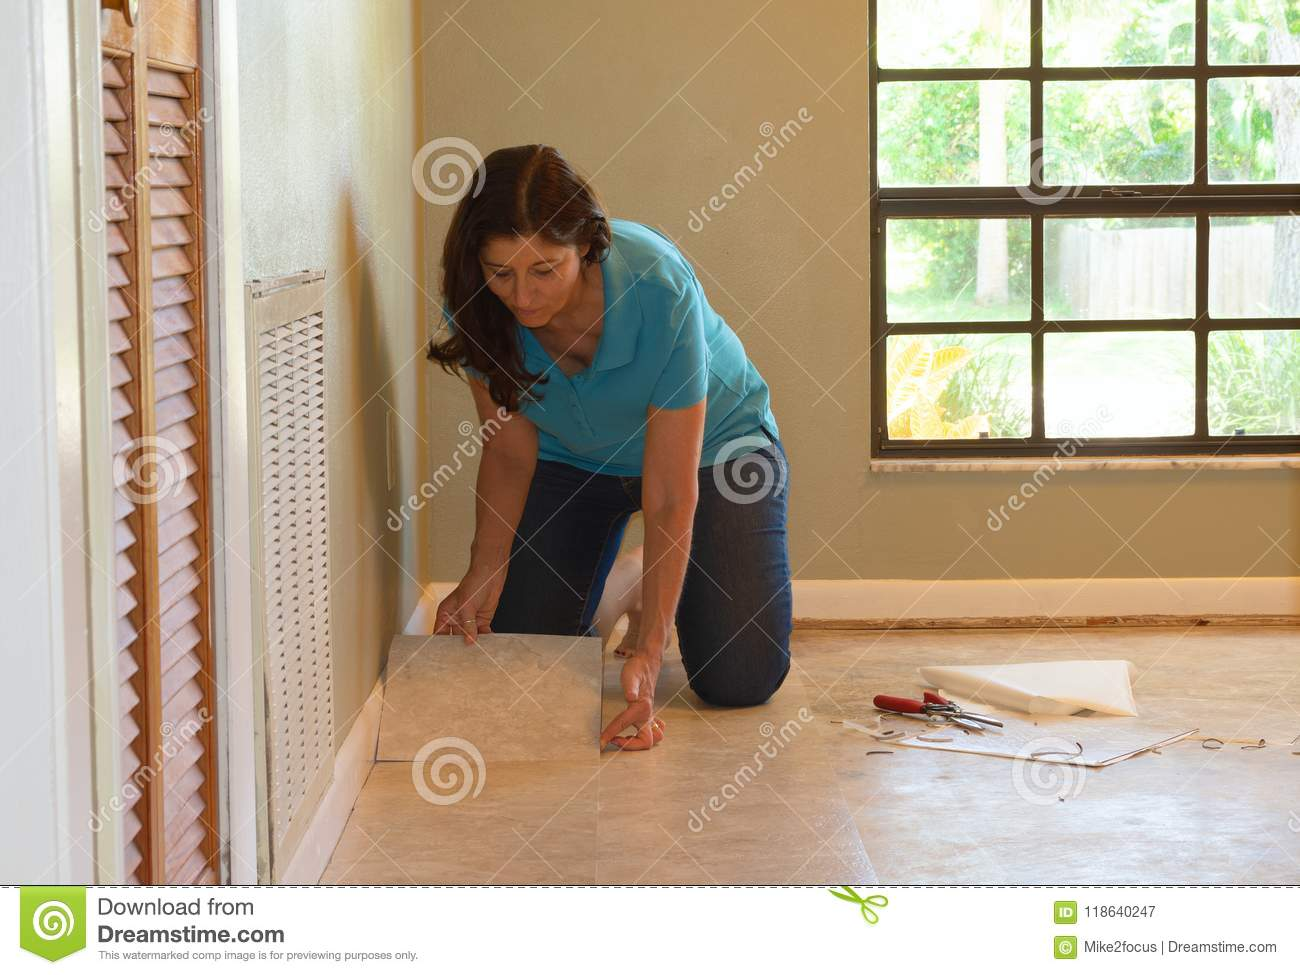 Installing Vinyl Tile Diy Homeowner Woman Or Professional Installing Vinyl Tile Flooring